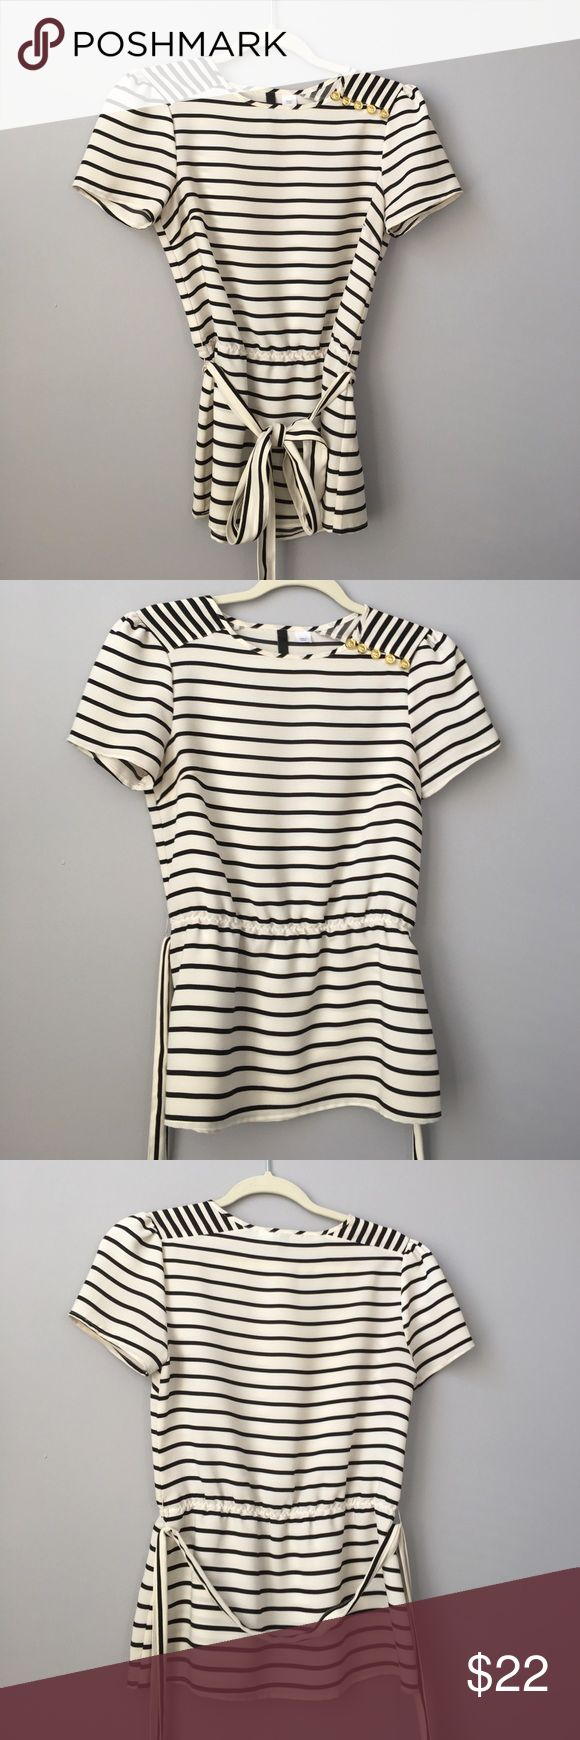 H&M black and white short sleeve blouse H&M short sleeve blouse, black and white stripped. Has elastic waists with belt, belt is detachable. Has gold buttons on left shoulder so you can easily slip over head. Size 4, but runs a little small. Worn a few times. H&M Tops Blouses